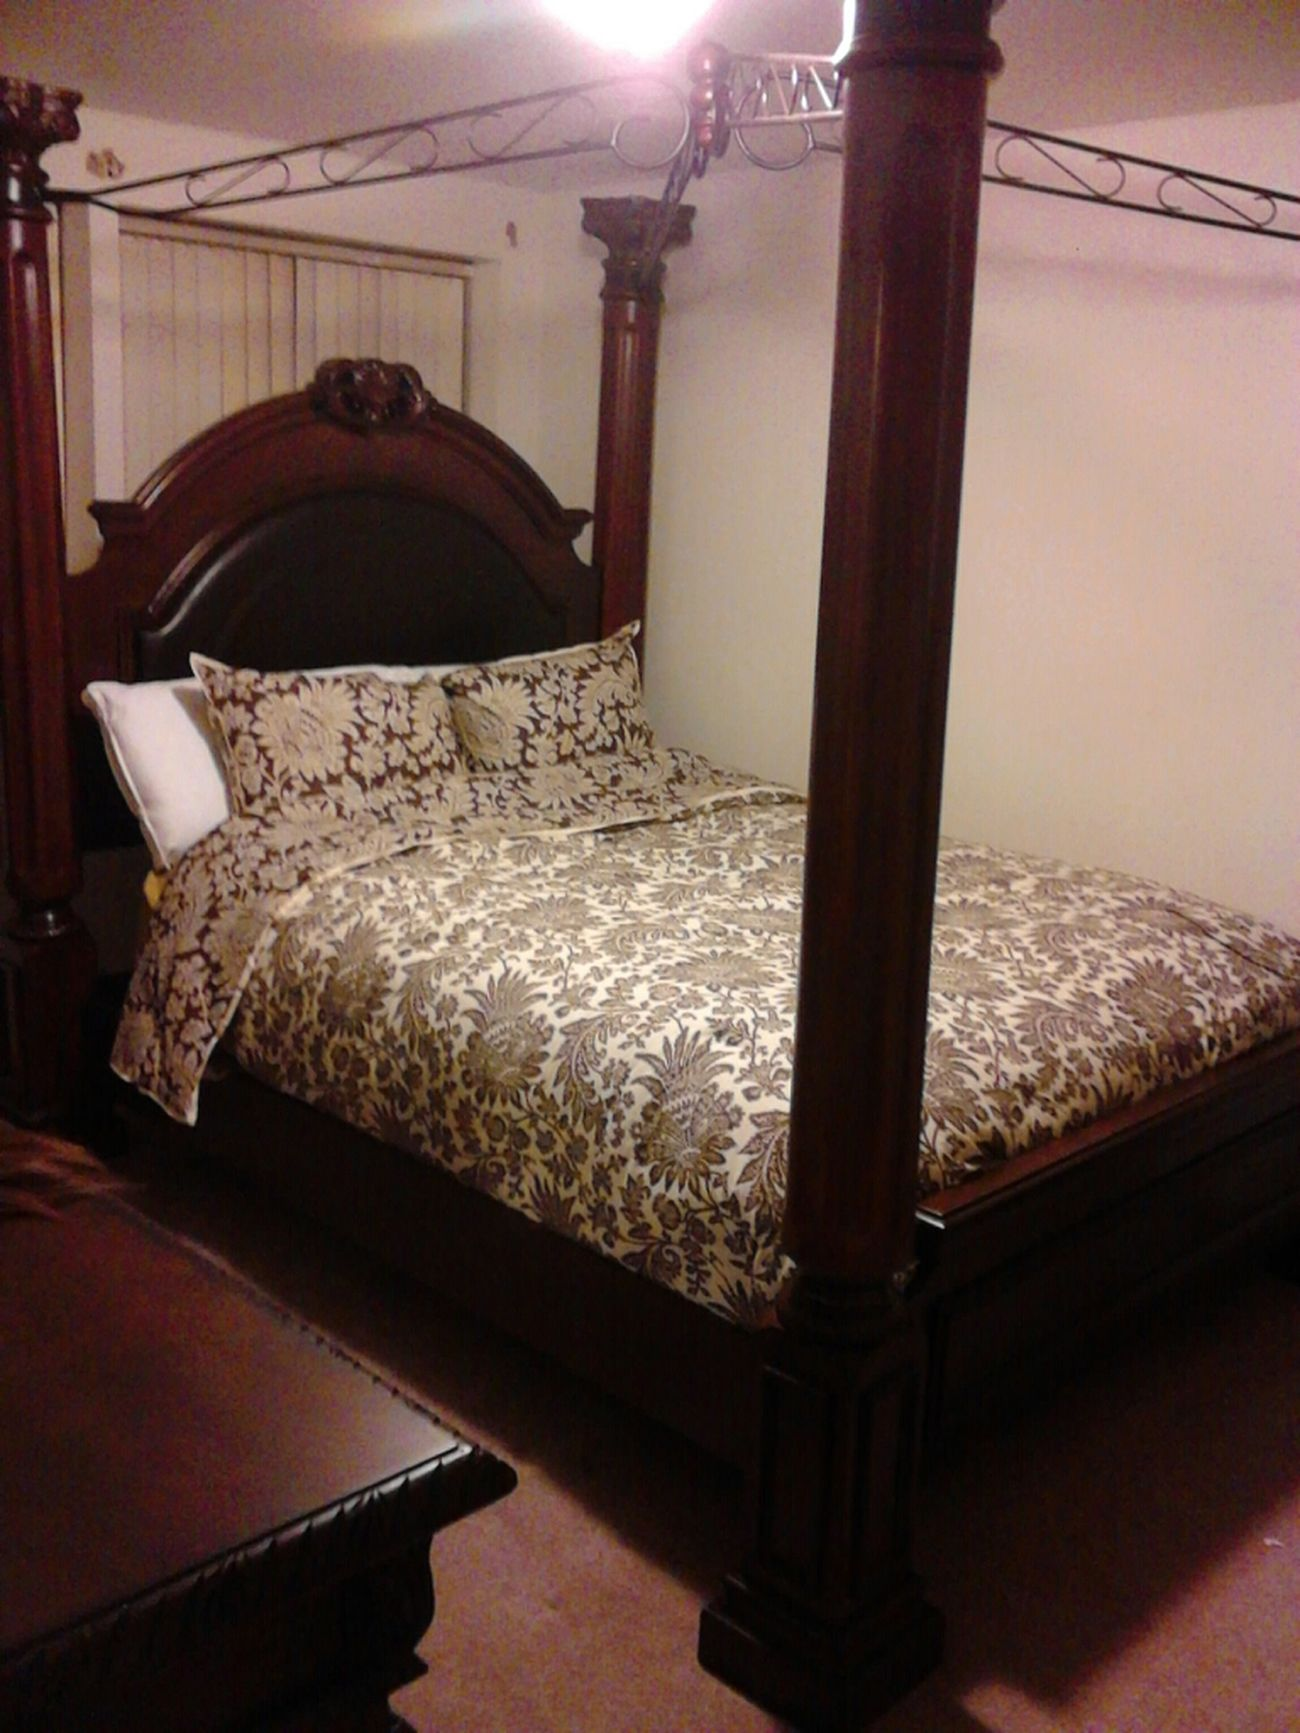 Every Diva Bed Heres Mine Who Want To Join In